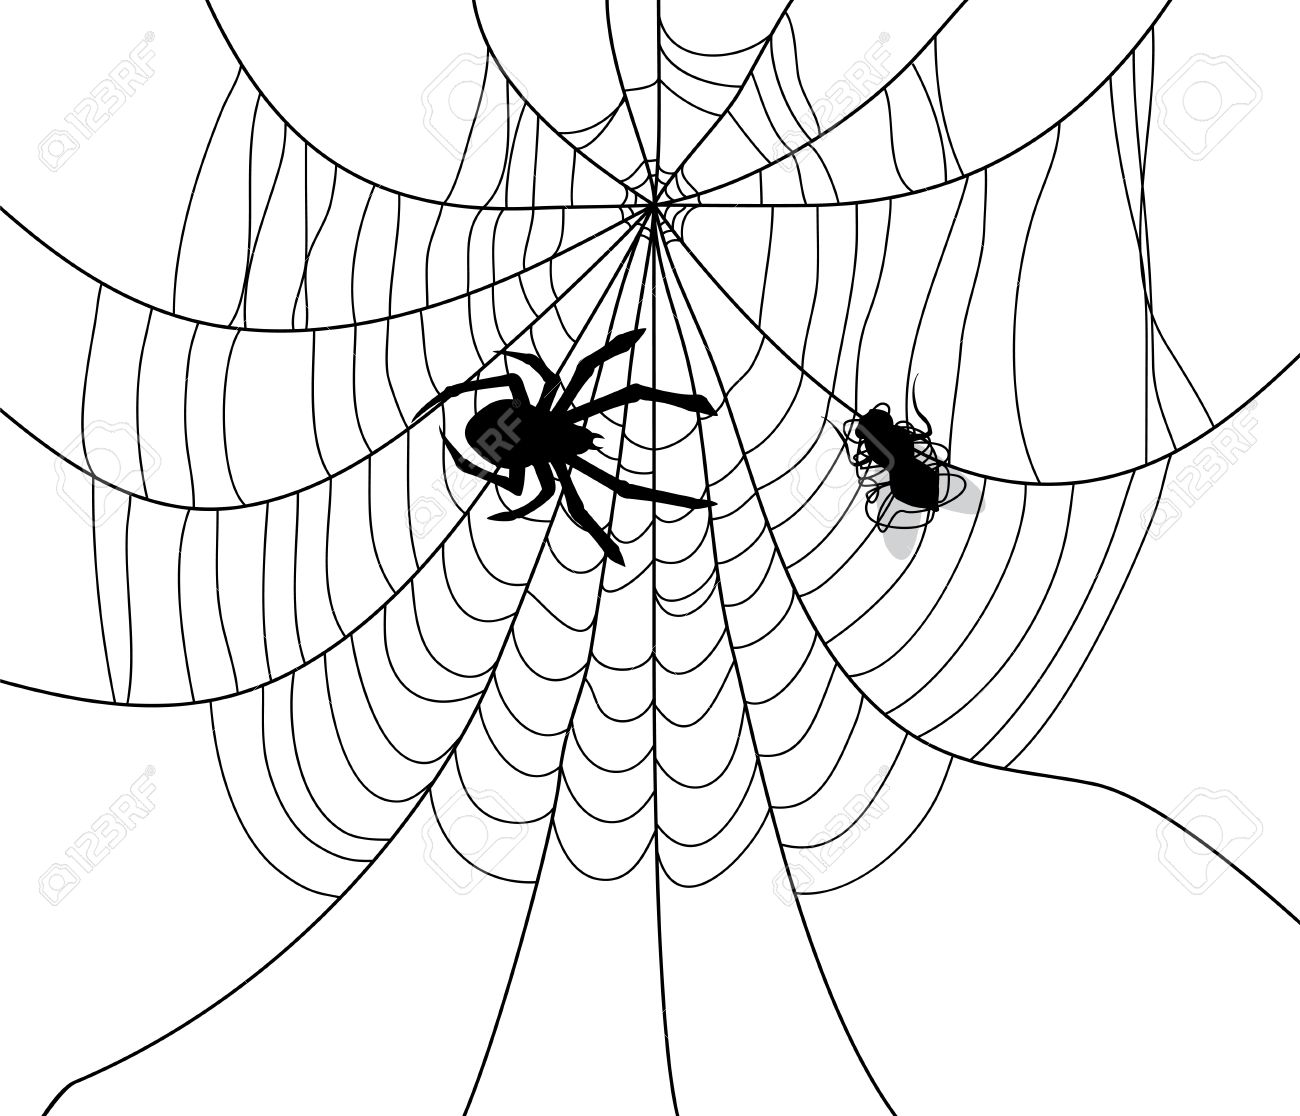 Vector Illustration Of Spider, Web And A Caught Fly Royalty Free.